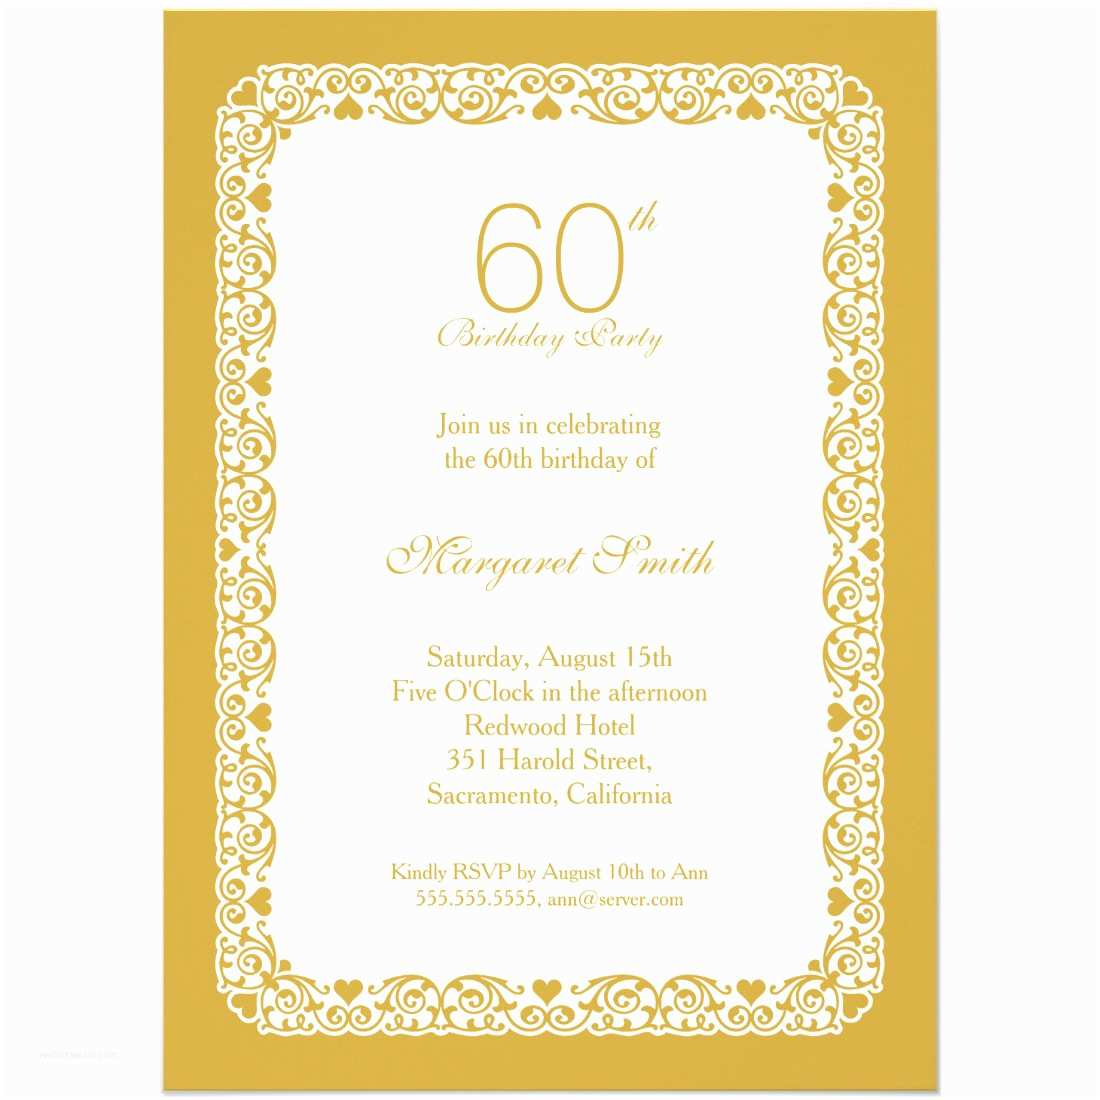 Personalized Birthday Invitations Elegant Personalized 60th Birthday Party Invitations